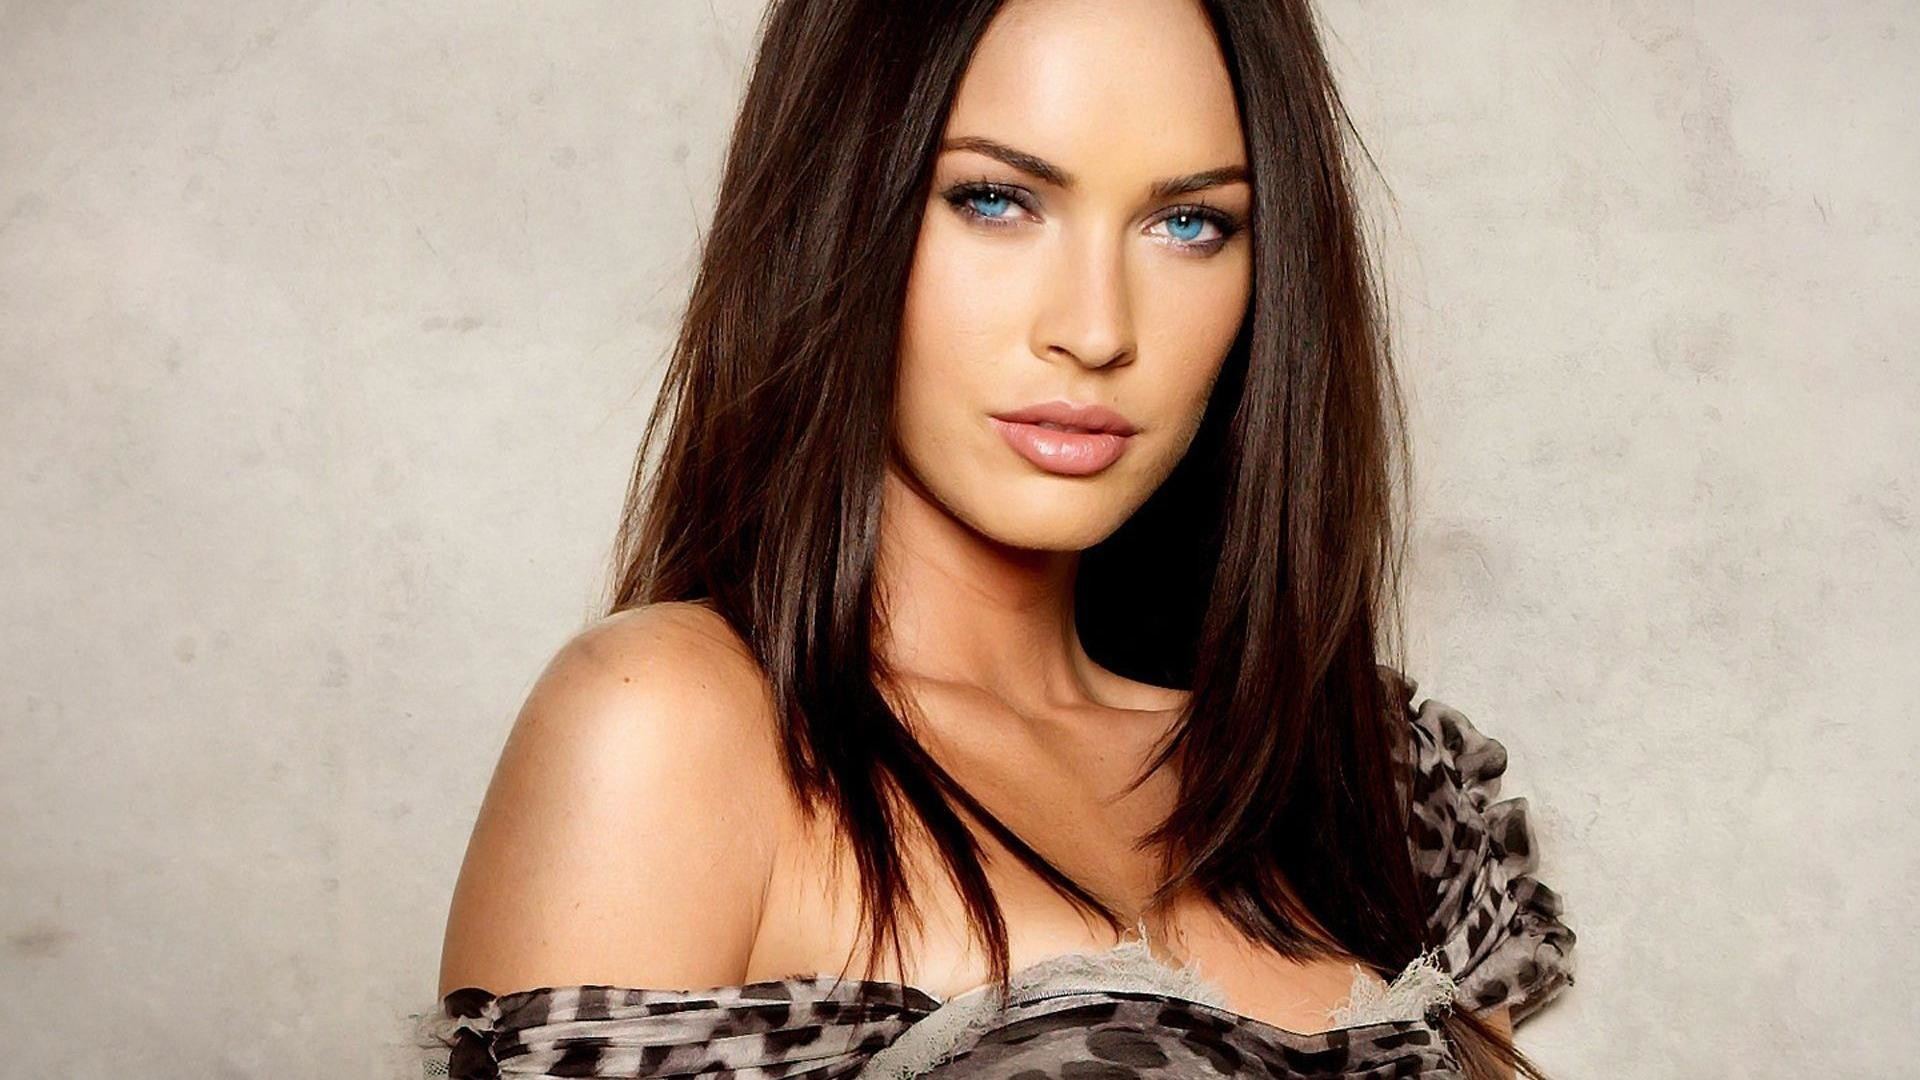 Beautiful Female Celebrities images Megan Fox 2 HD wallpaper and background  photos